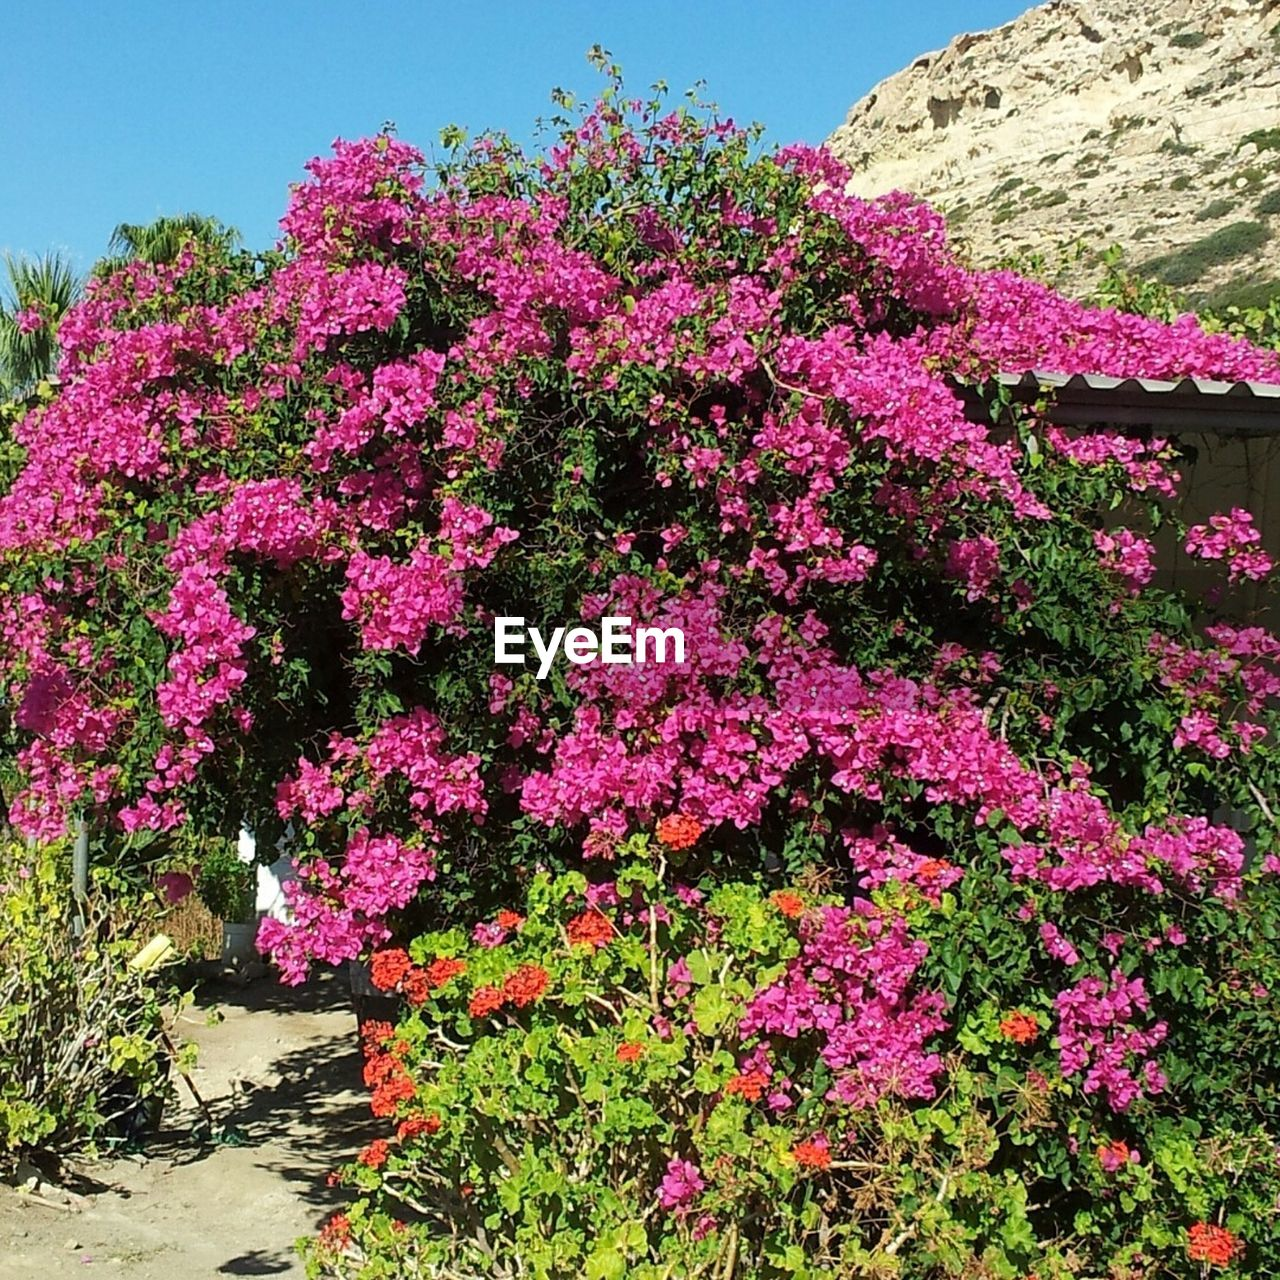 flower, growth, pink color, plant, nature, beauty in nature, outdoors, blooming, day, no people, freshness